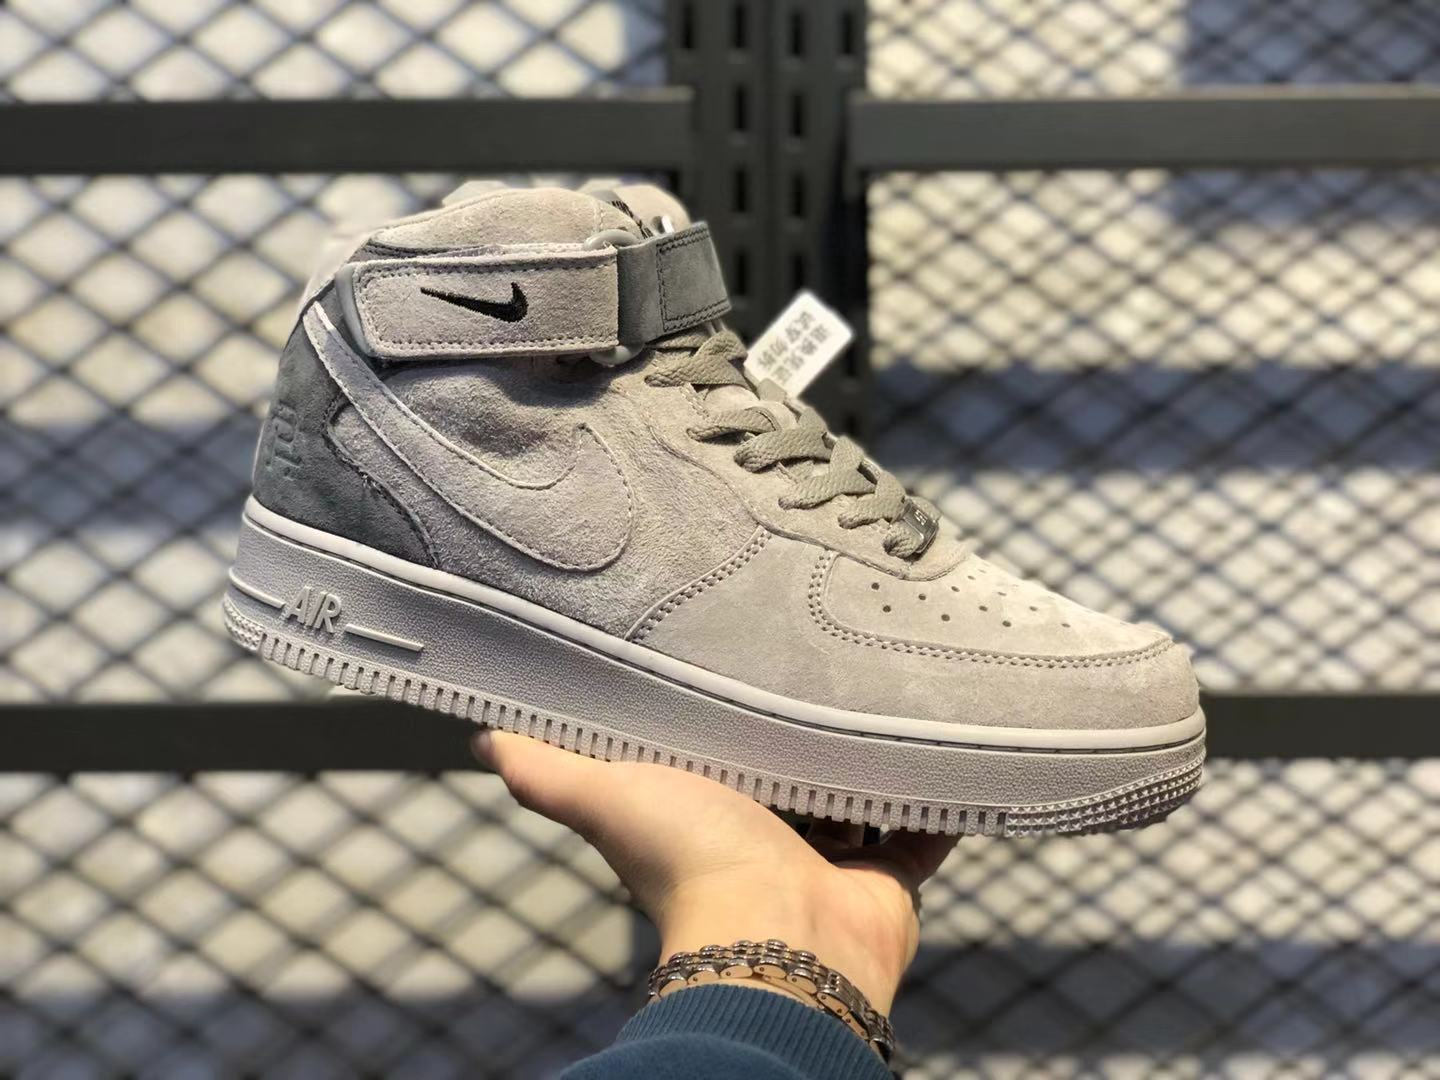 Reigning Champ x Nike Air Force 1 Mid Dark Grey/Grey On Sale 807618-200